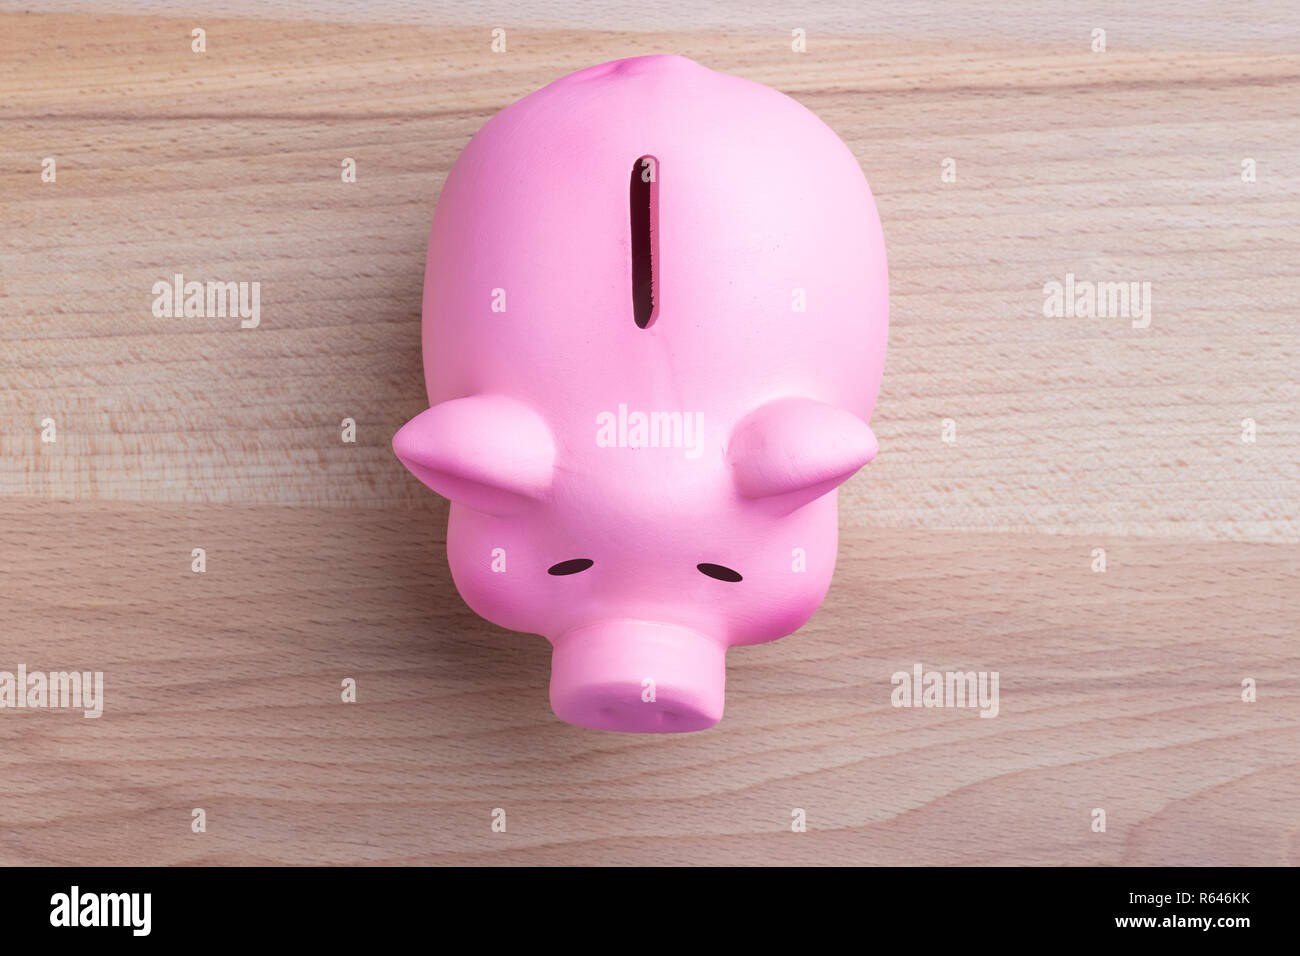 Piggy bank on wooden table Top view Stock Photo